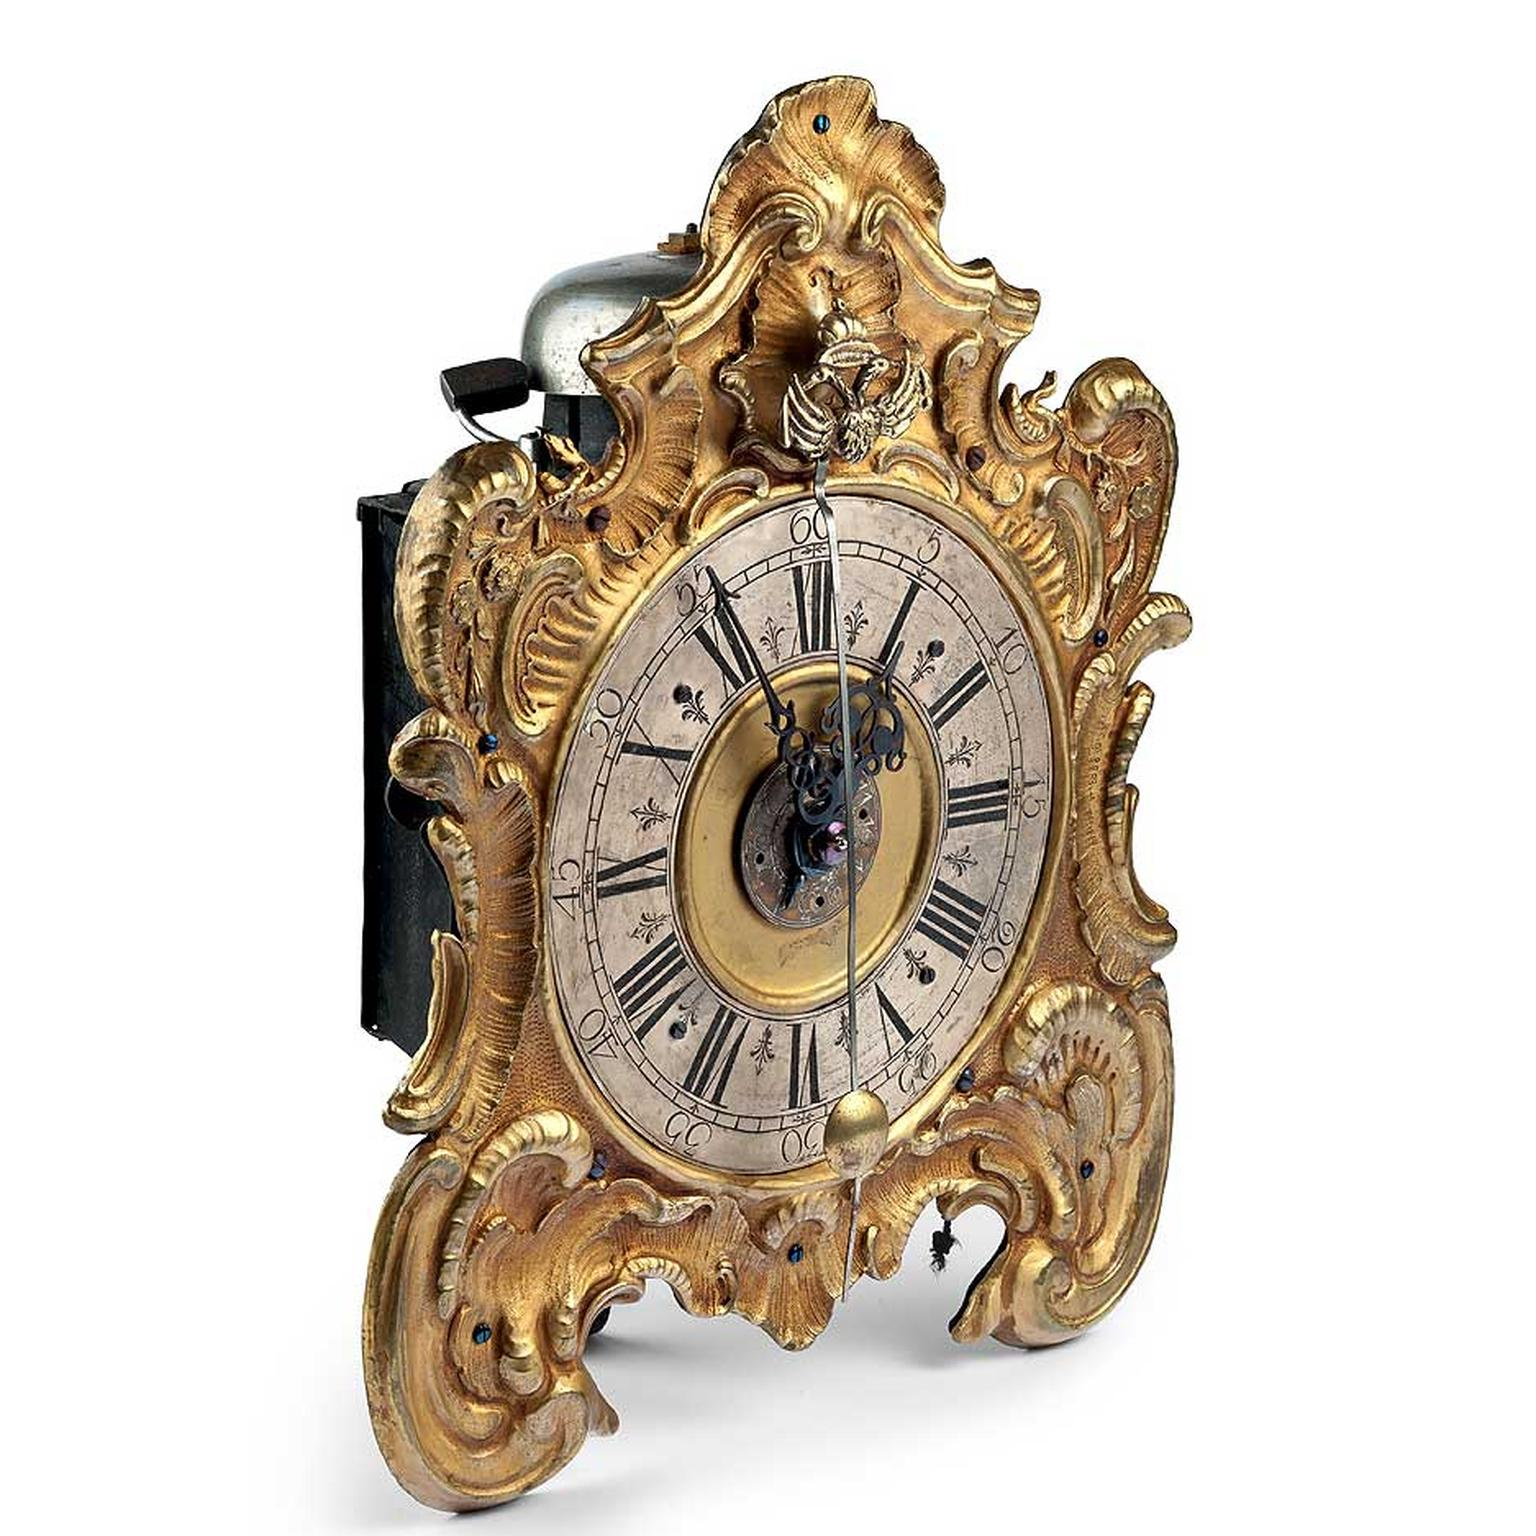 Fondation-Haute-Horlogerie-antique-clock